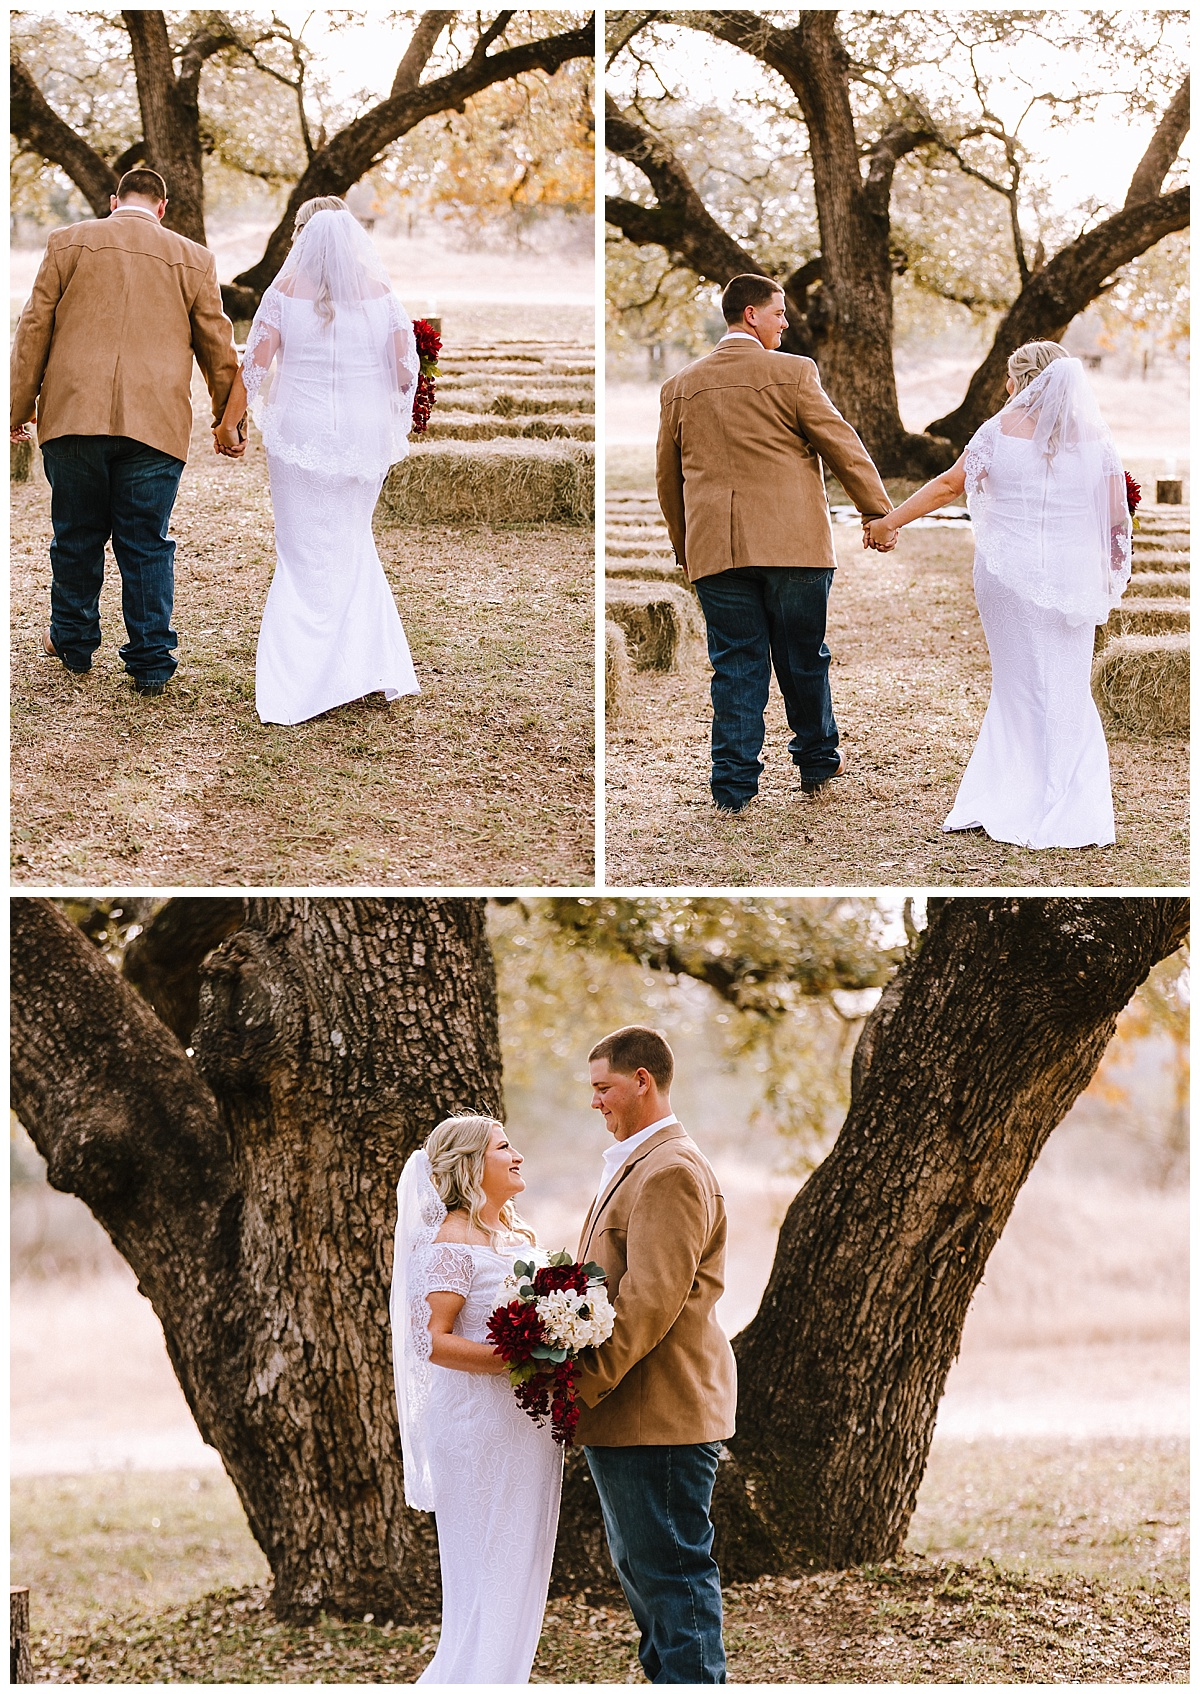 Wedding-Photographer-LaVernia-Texas-Ceremony-Under-the-Trees-Bride-Groom-Fall-McDonald-Carly-Barton-Photography_0003.jpg